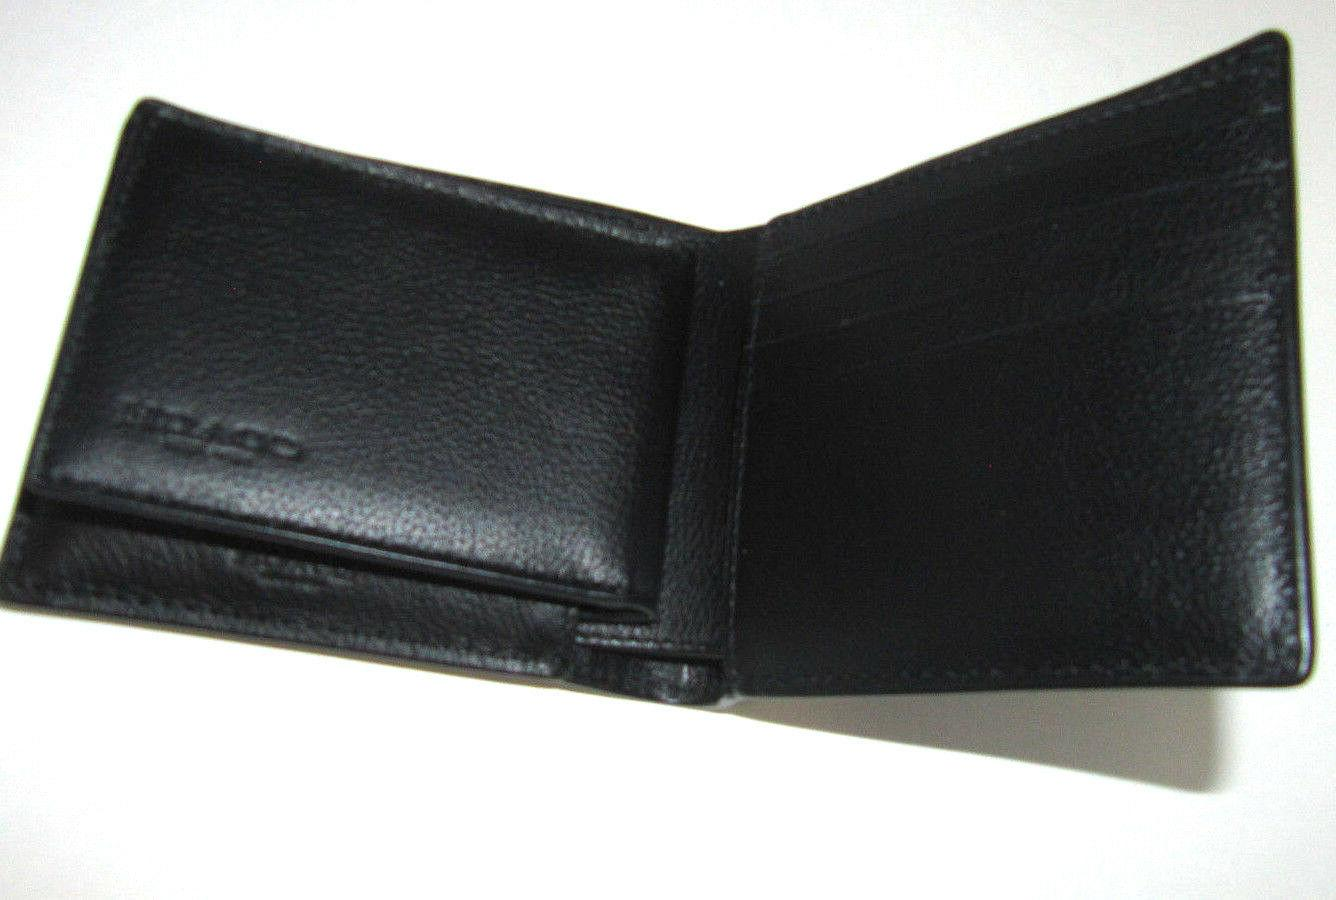 Coach Sport Calf Black Leather Wallet 178